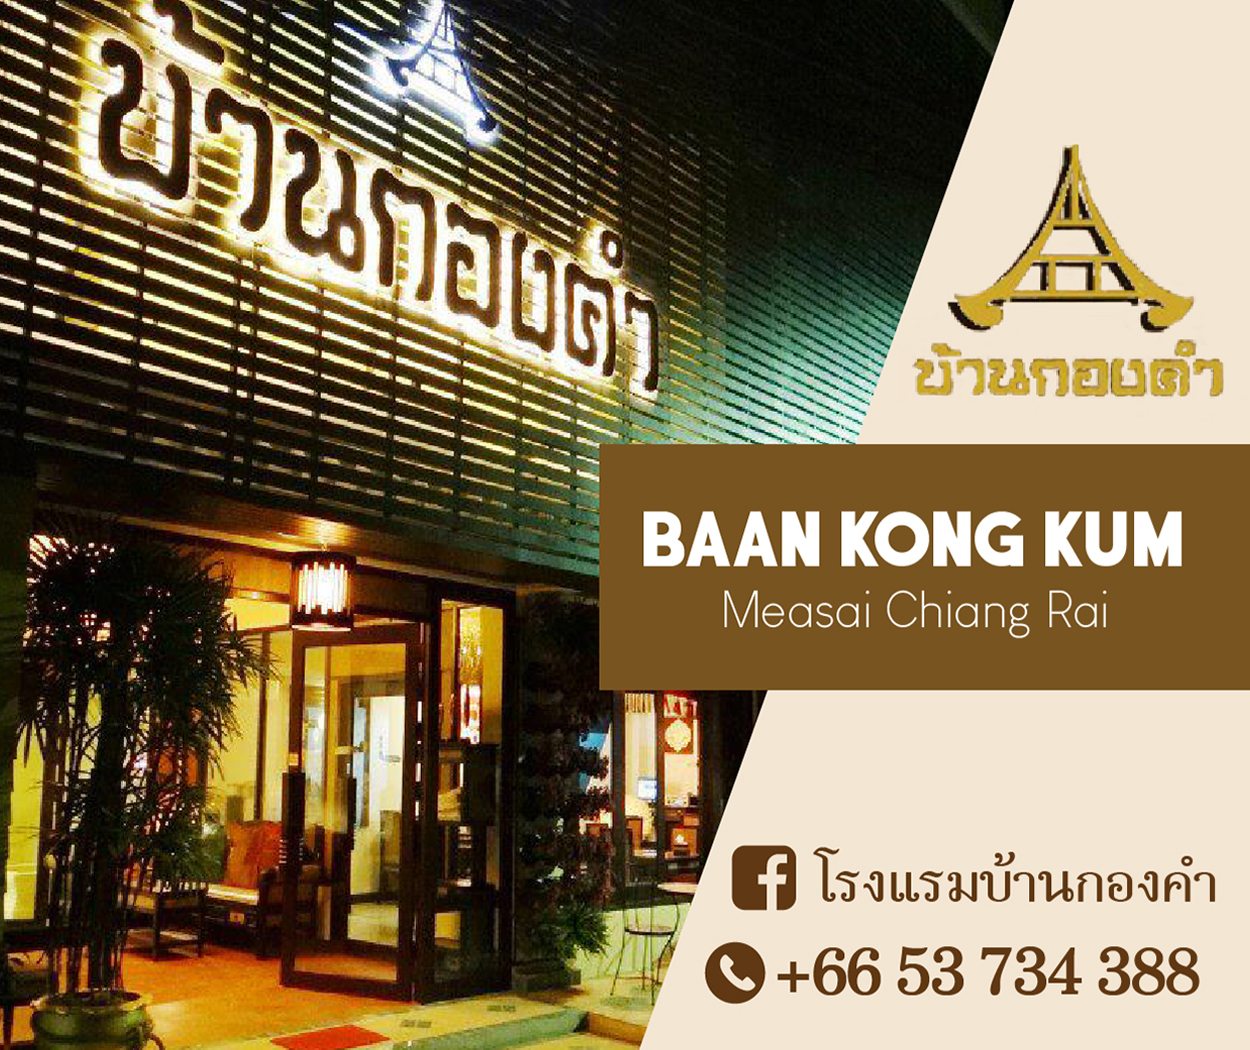 Baan Kong Kum Chiang Rai (TouristAttraction_Banner) 1200Baht, on May 30, 2019